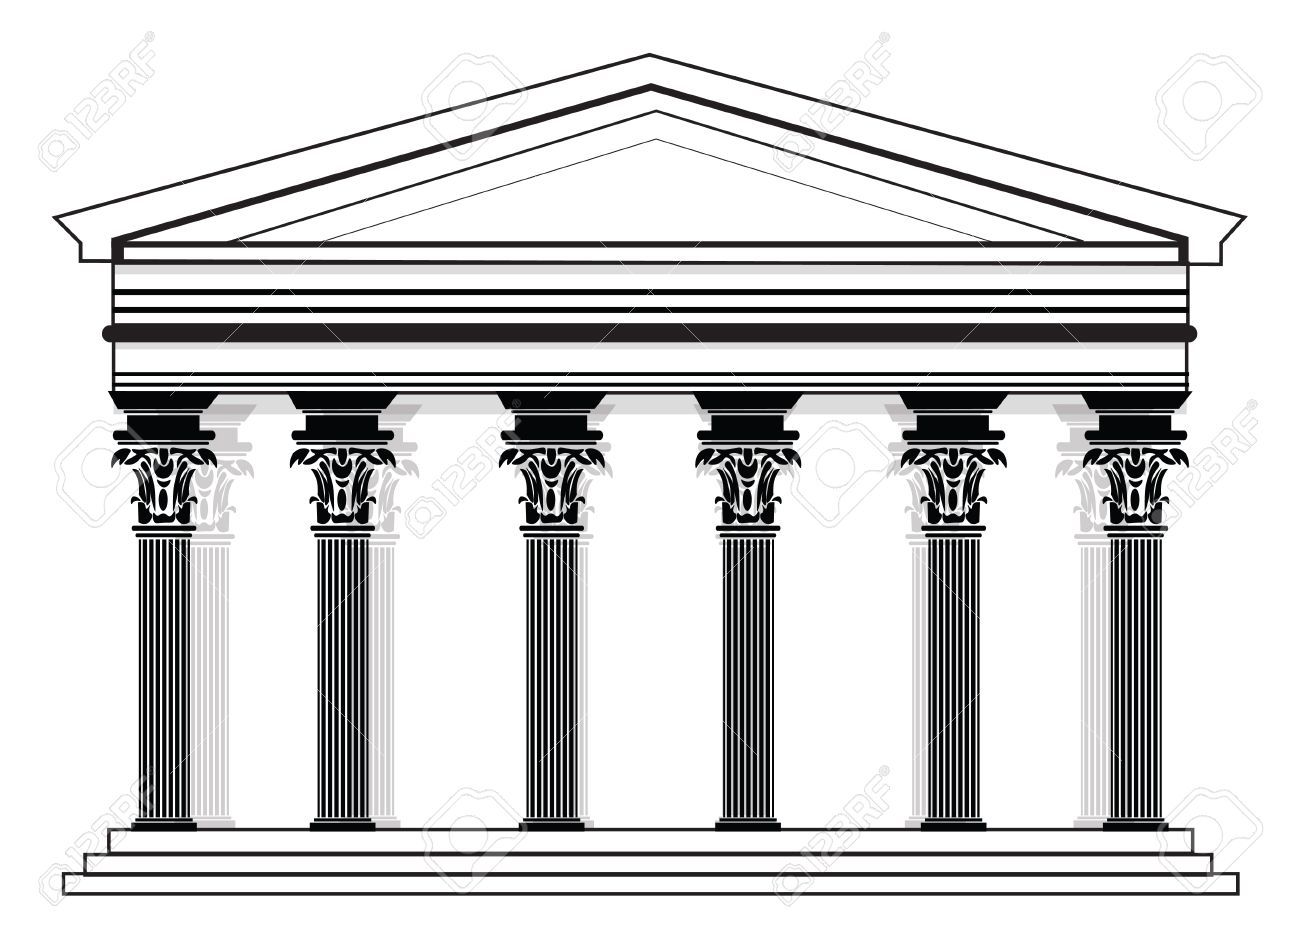 romangreek vector pantheon temple with corinthian columns high detailed architecture frontal view stock